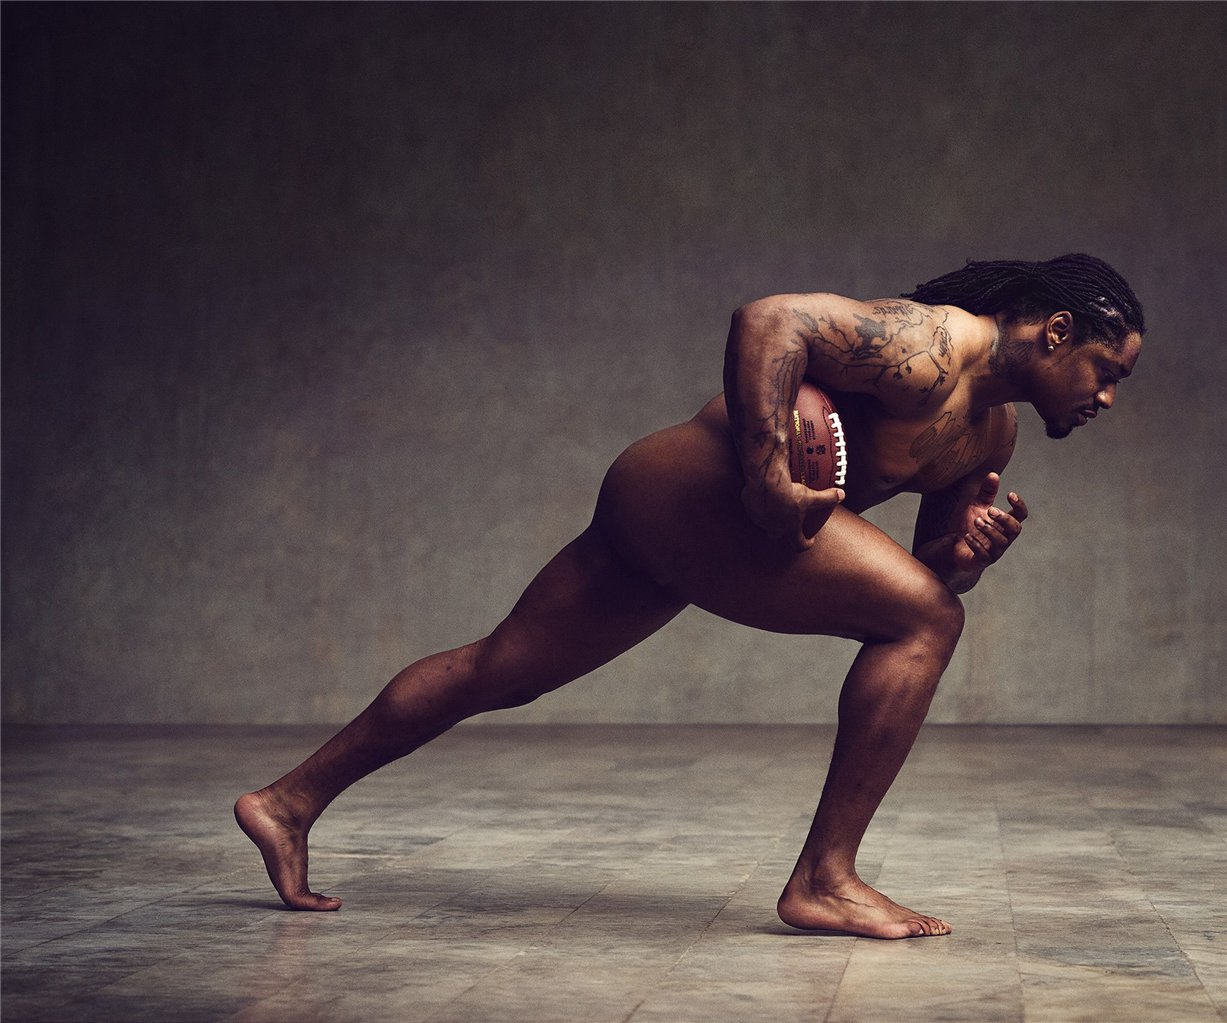 ESPN Magazine Body Issue 2014 - Marshawn Lynch / Маршон Линч